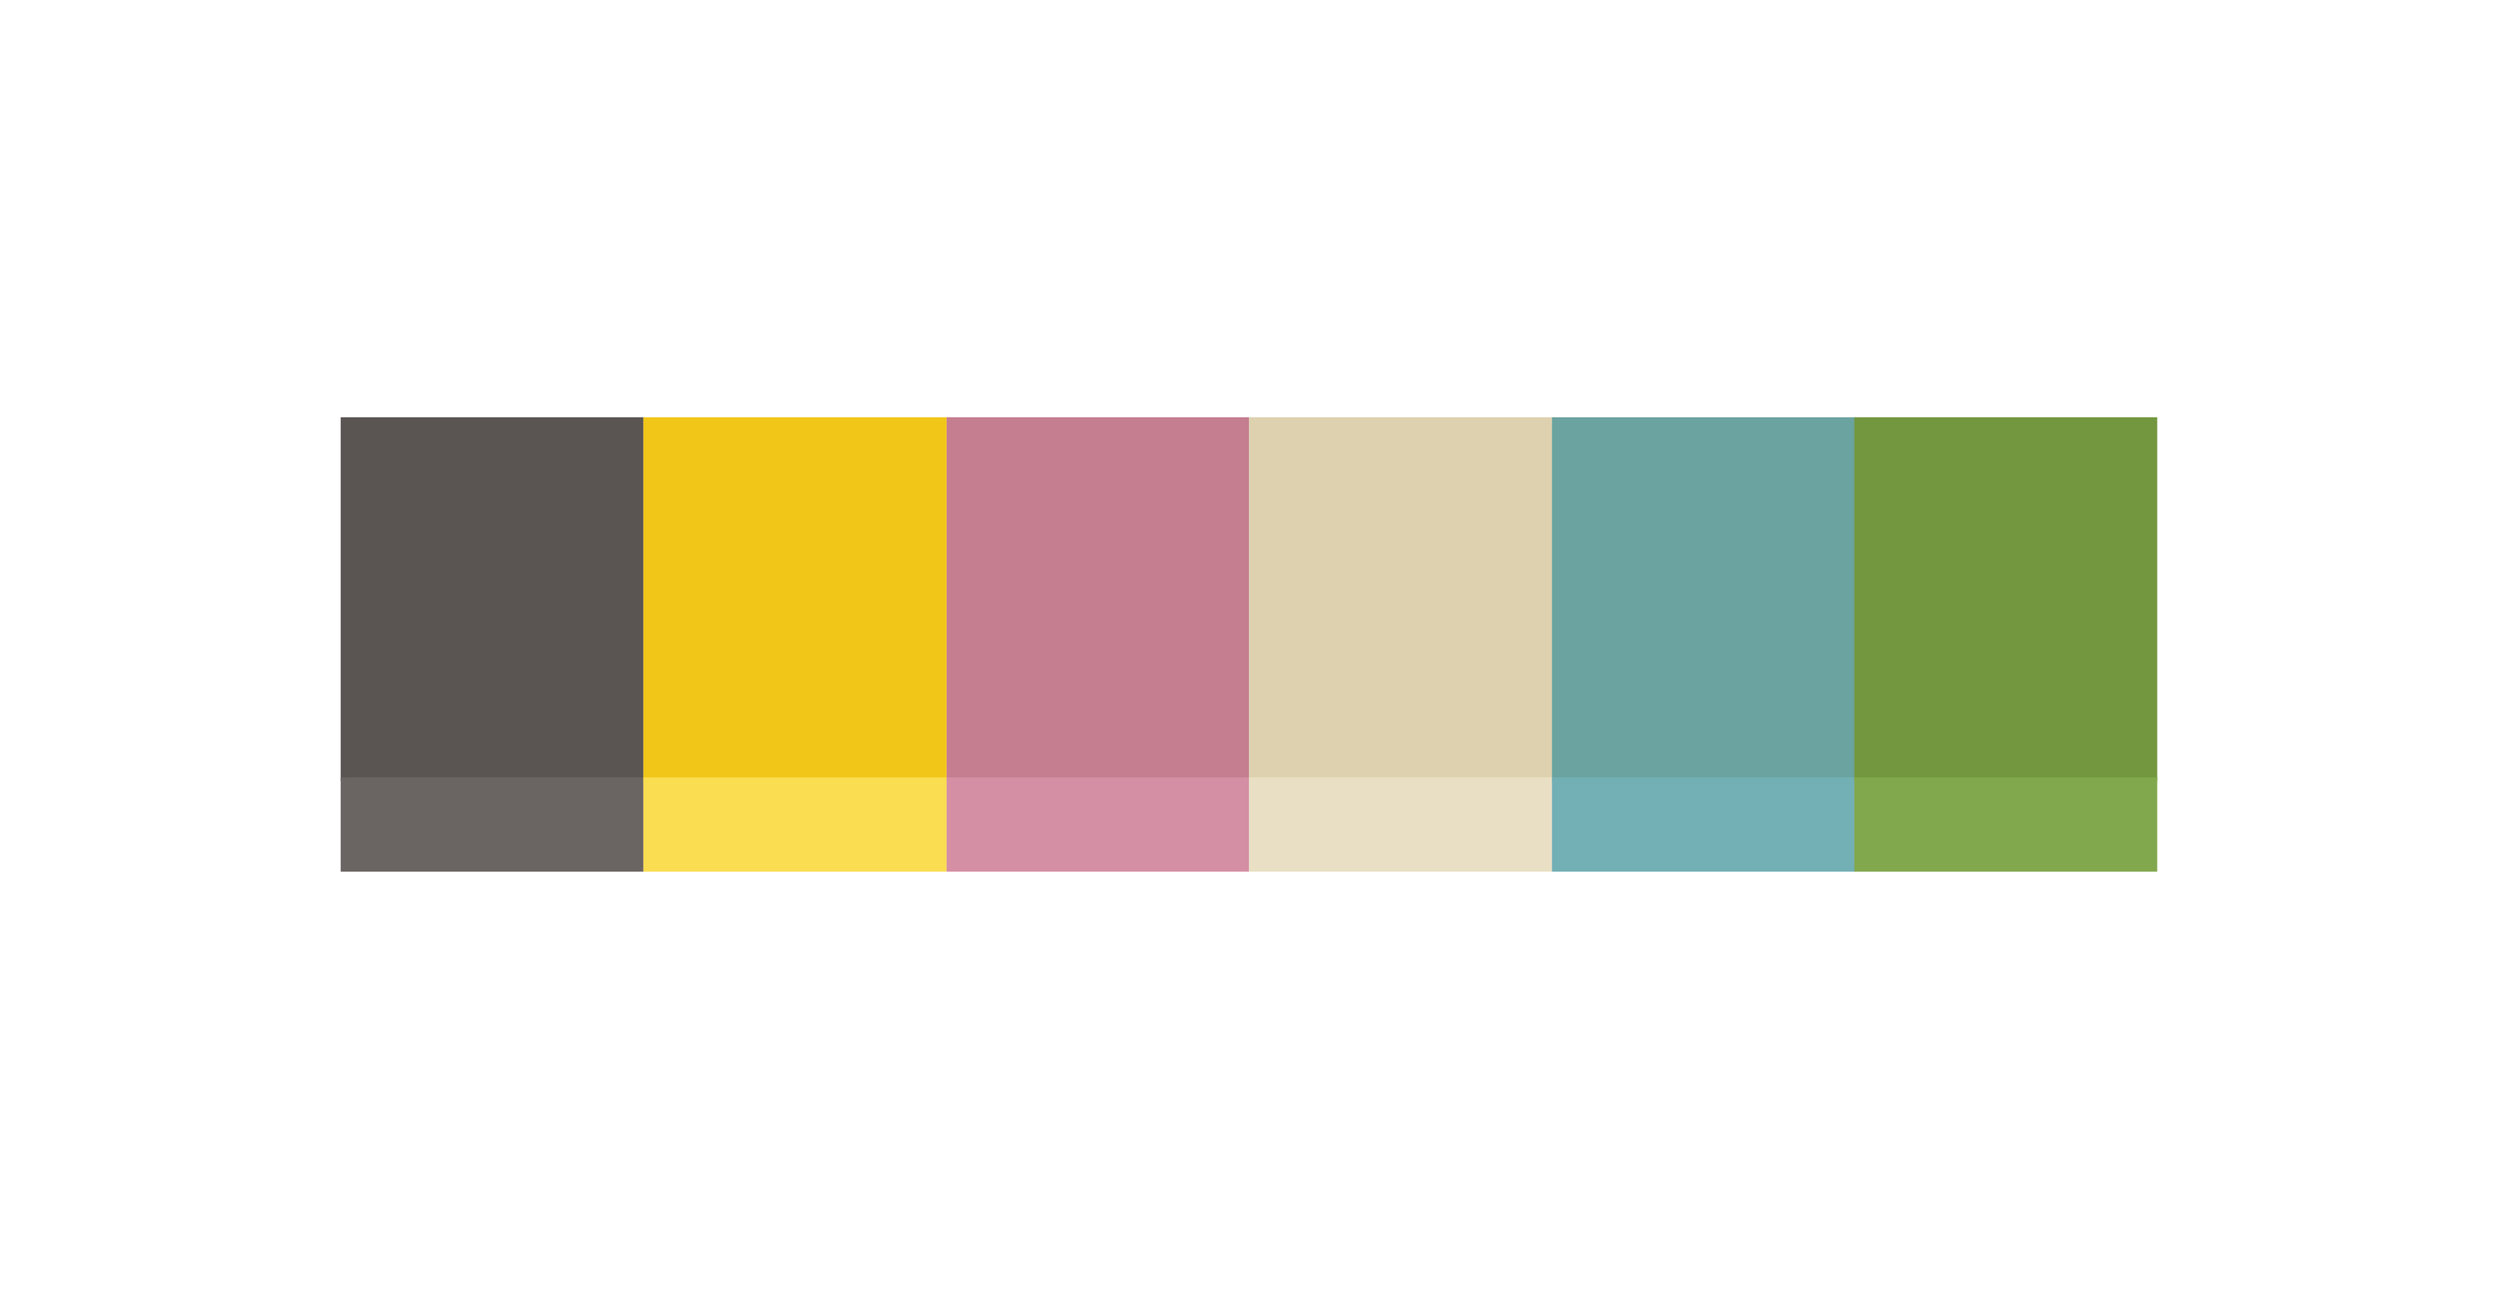 LynseyCreative_LiveUnearthed_Portfolio_colorpalette.jpg